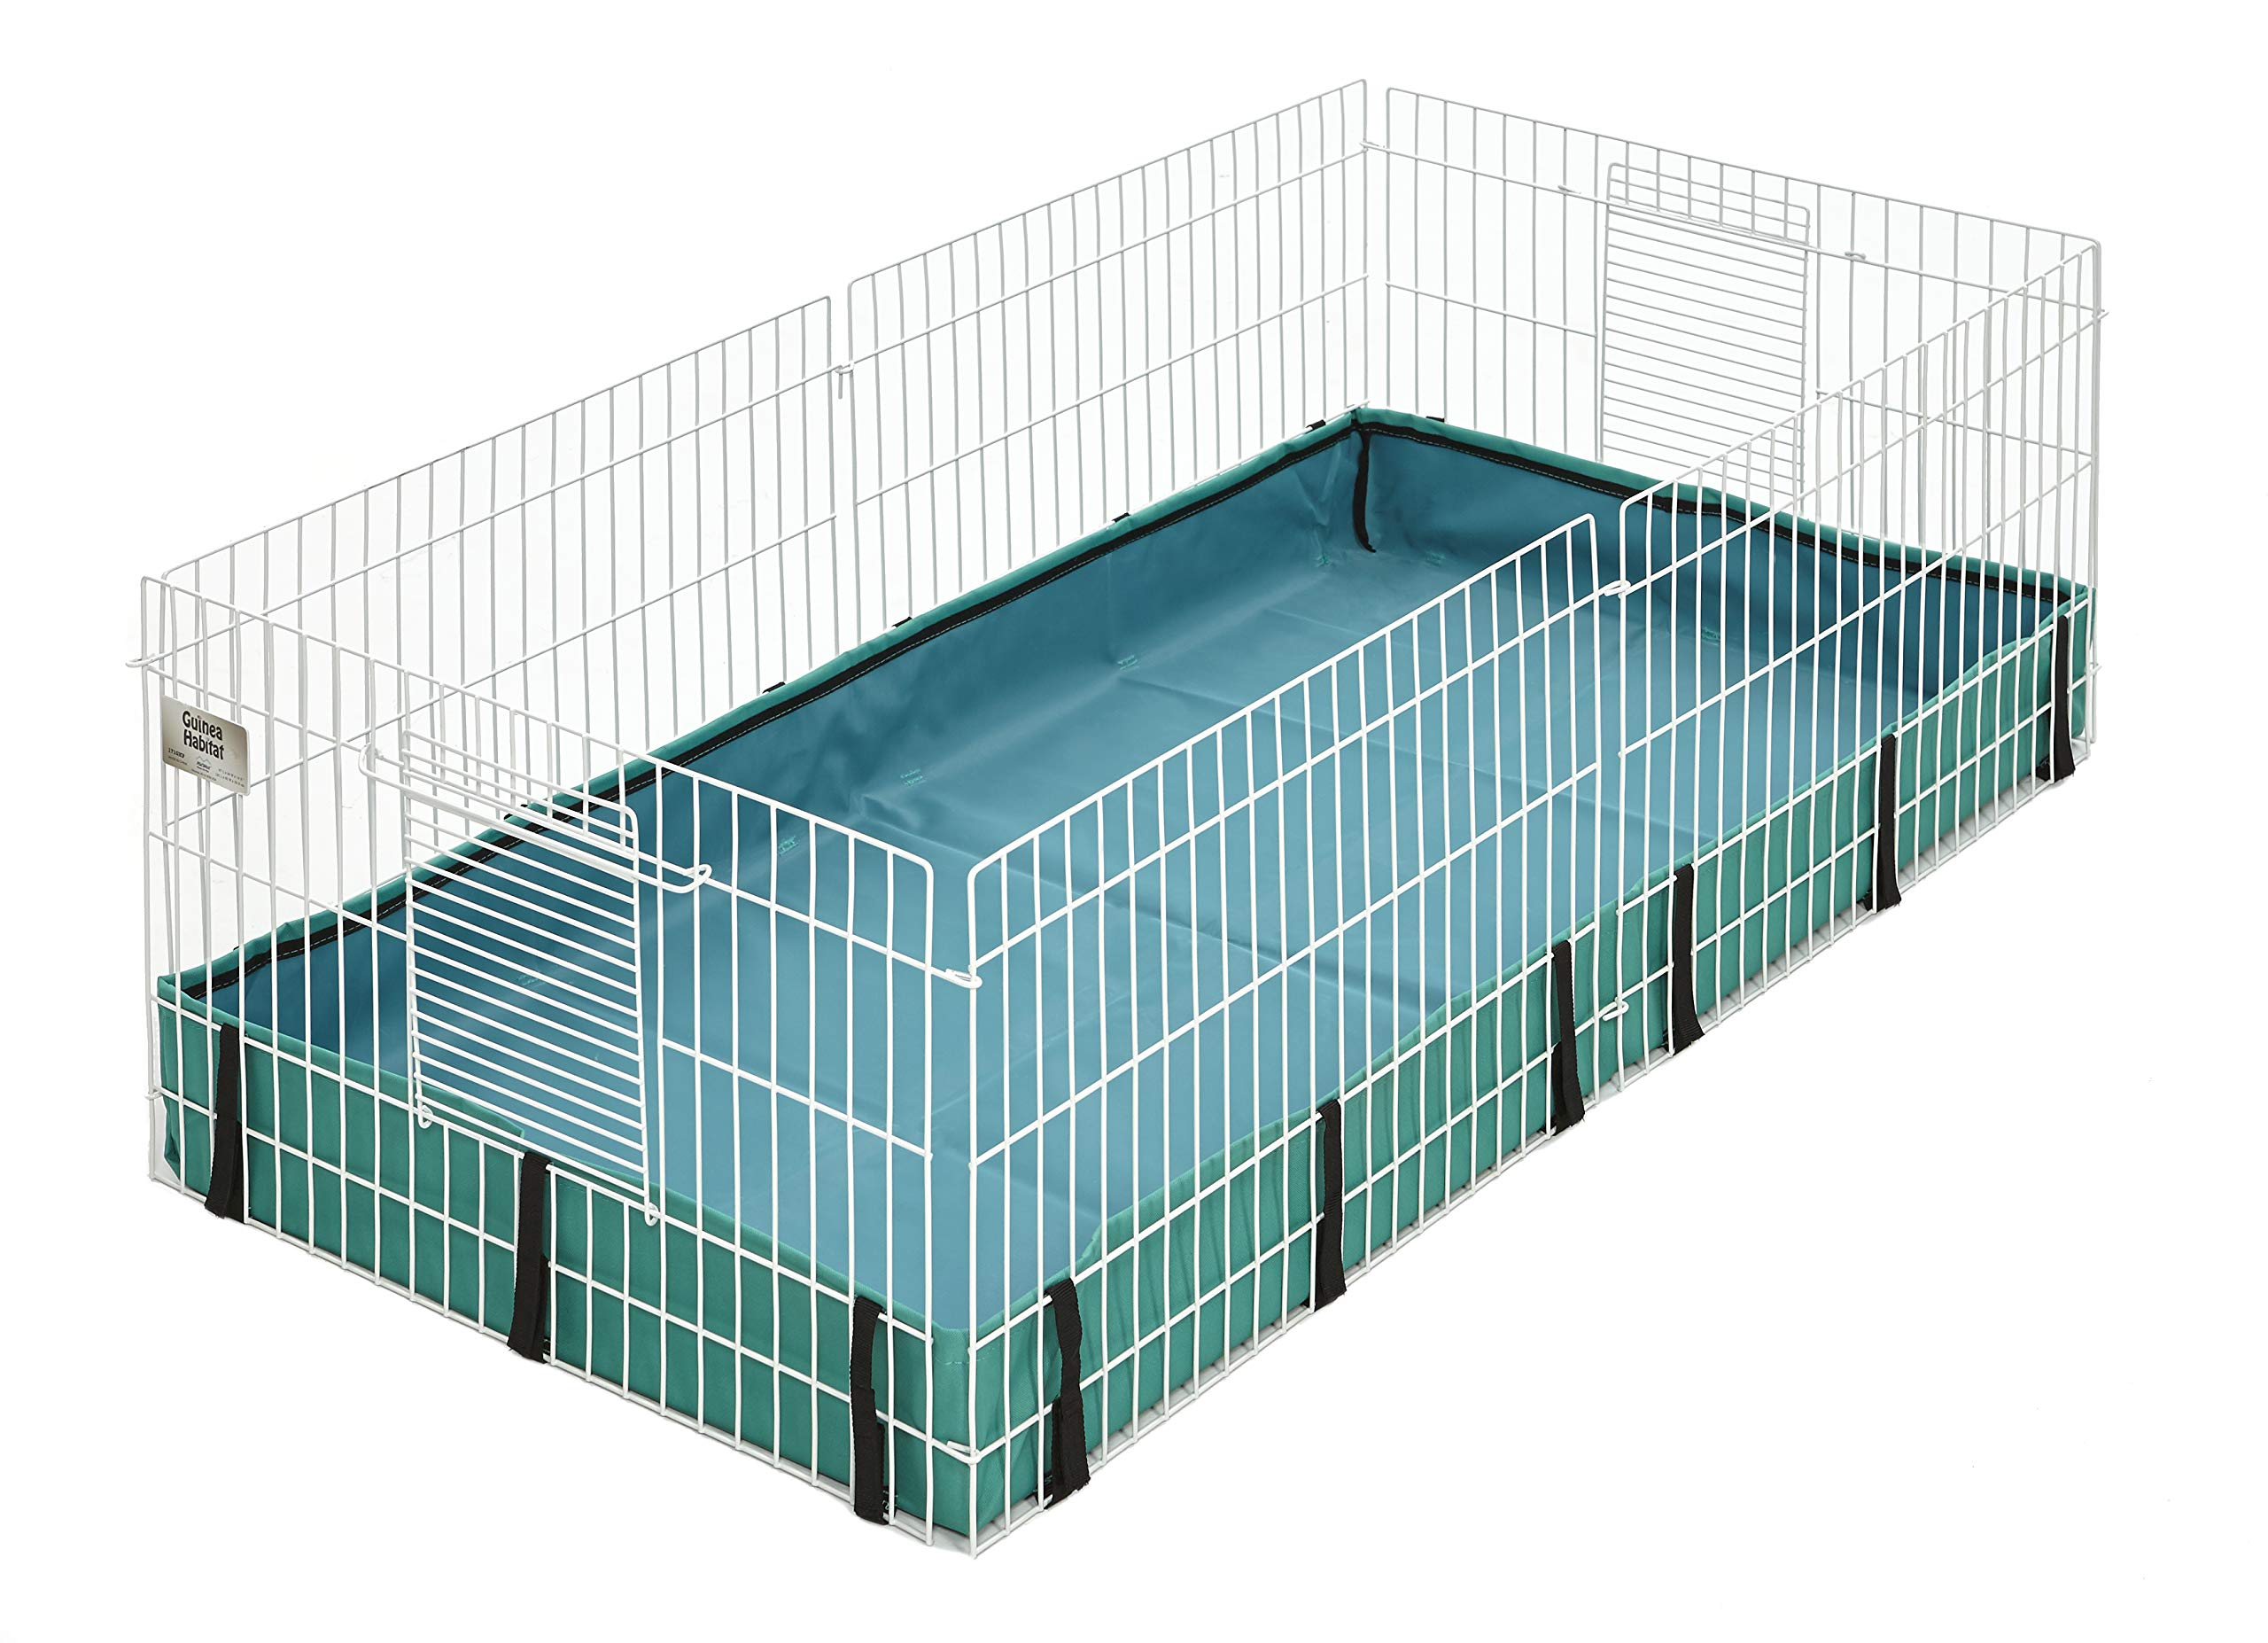 Guinea Habitat Guinea Pig Cage by MidWest, 47L x 24W x 14H Inches by MidWest Homes for Pets